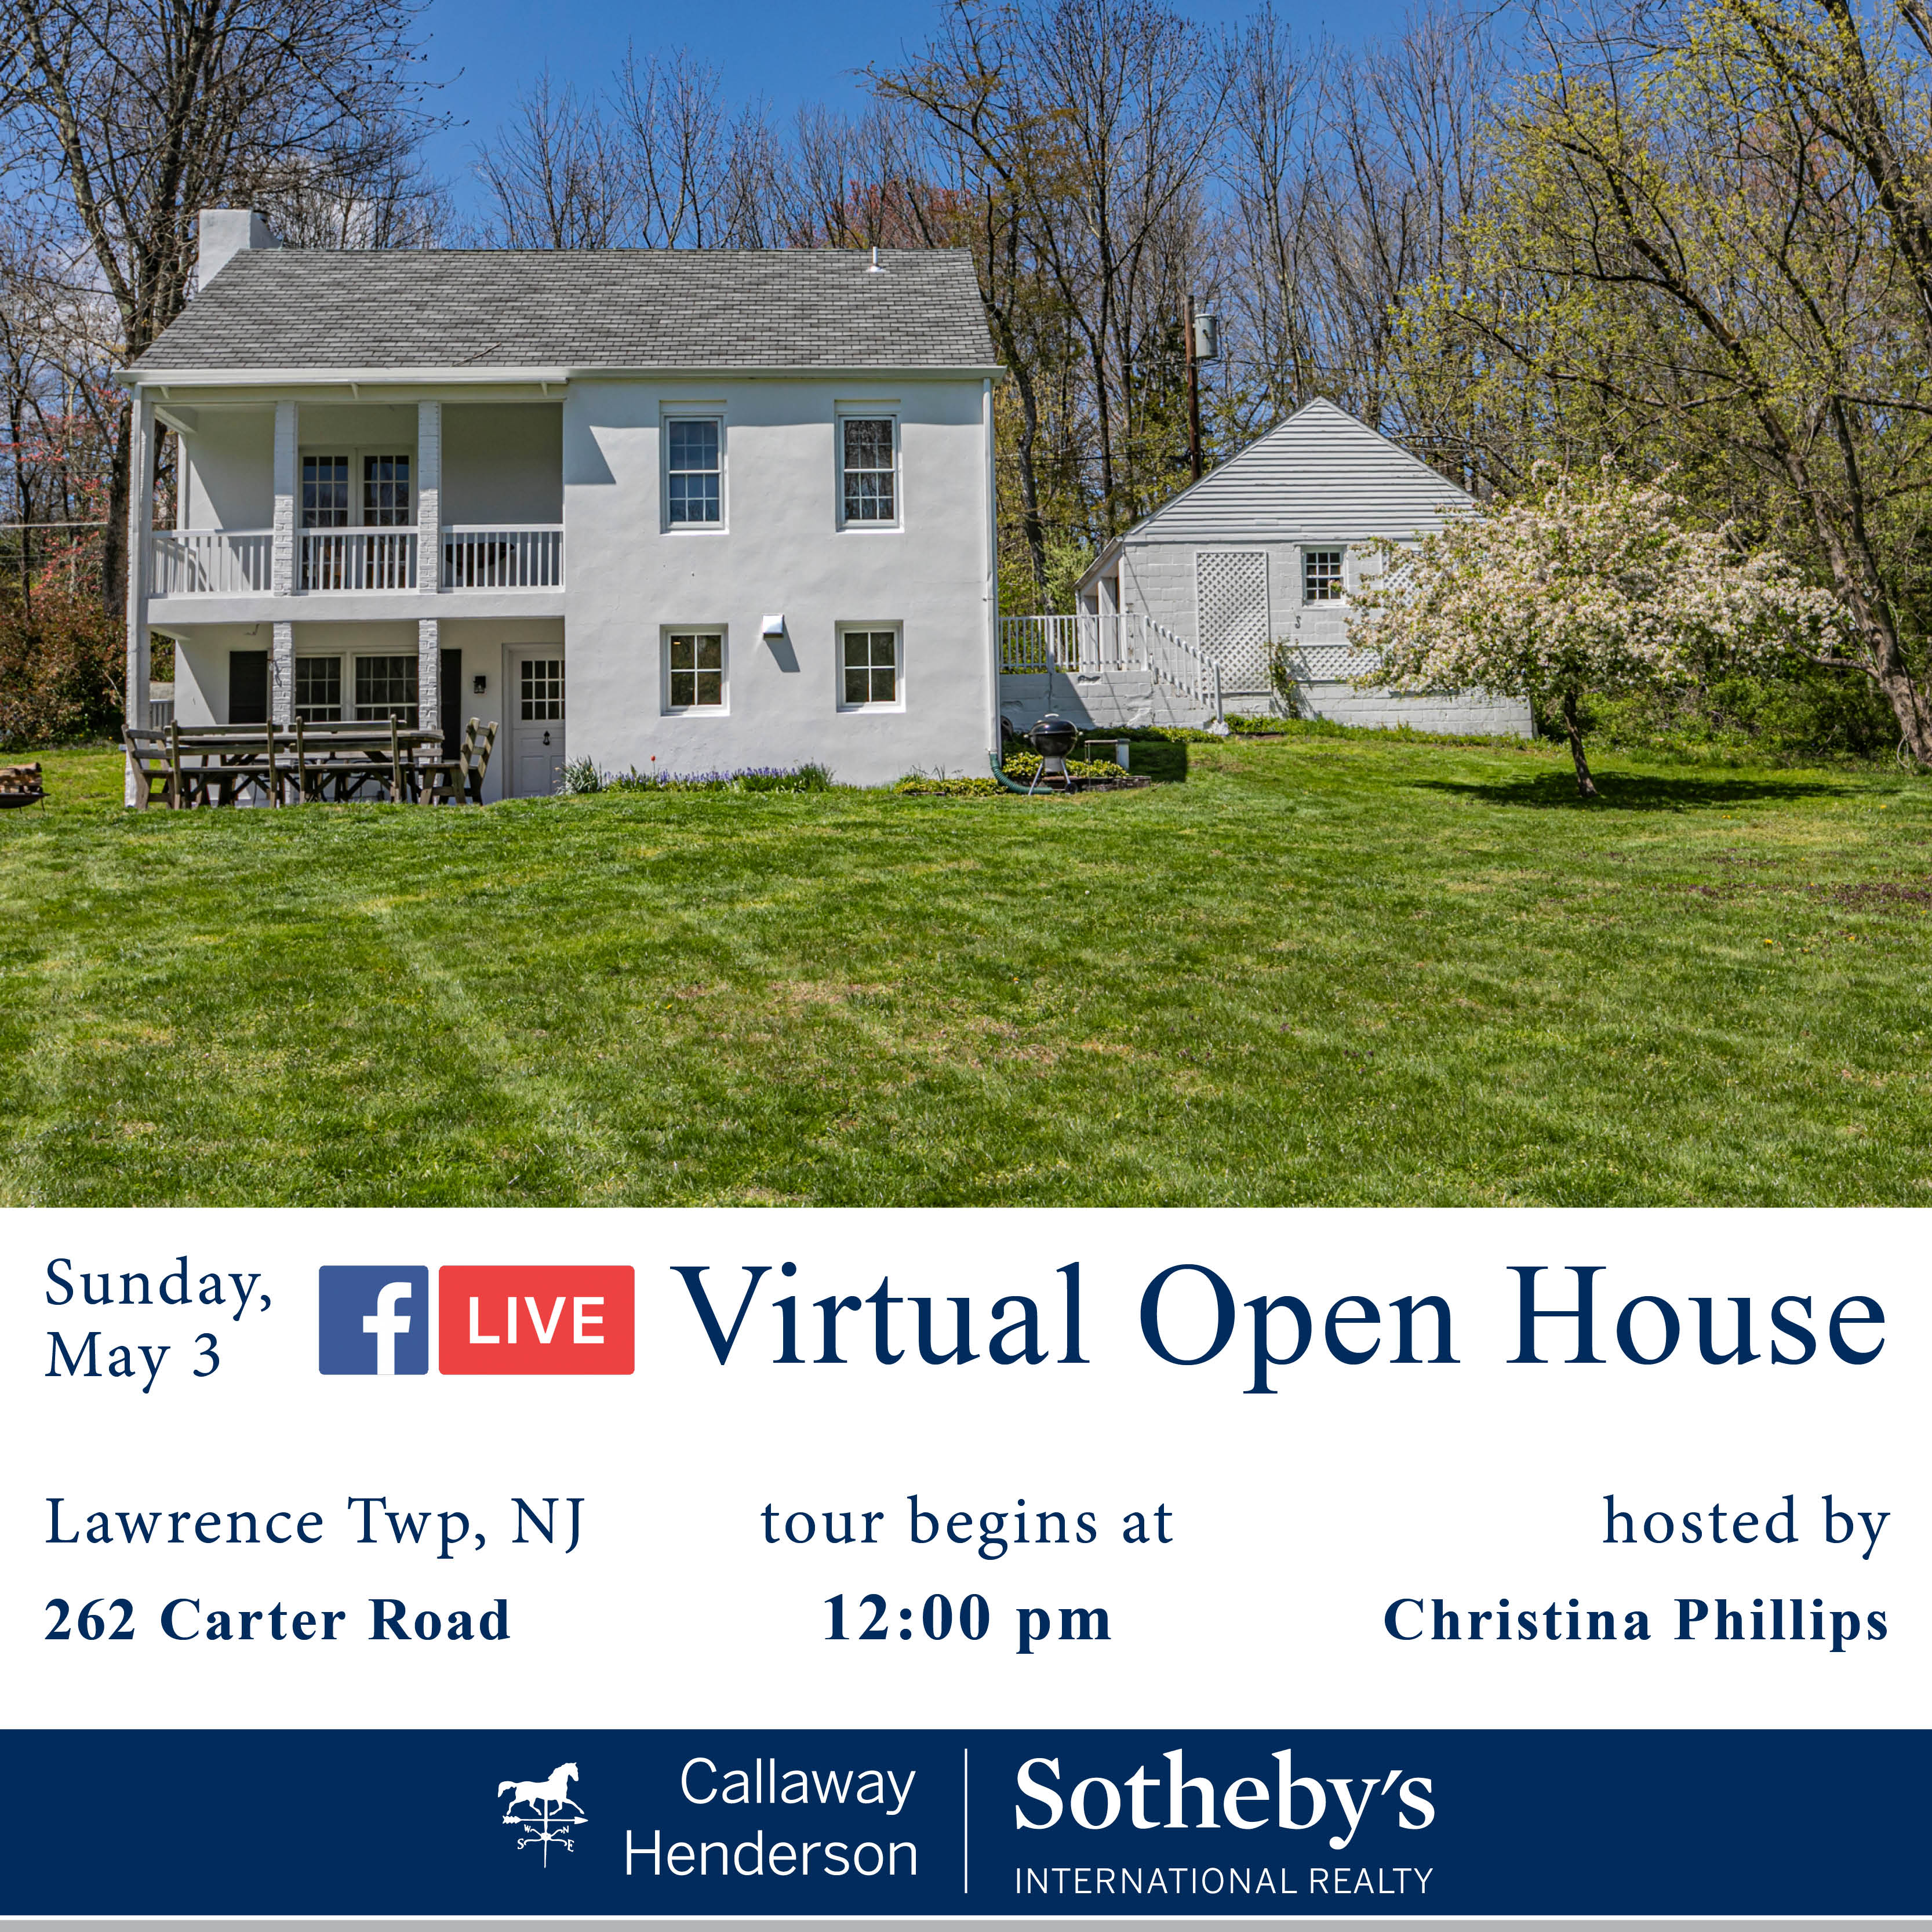 Live Virtual Open House-200503 1200-Carter Road 262 v2